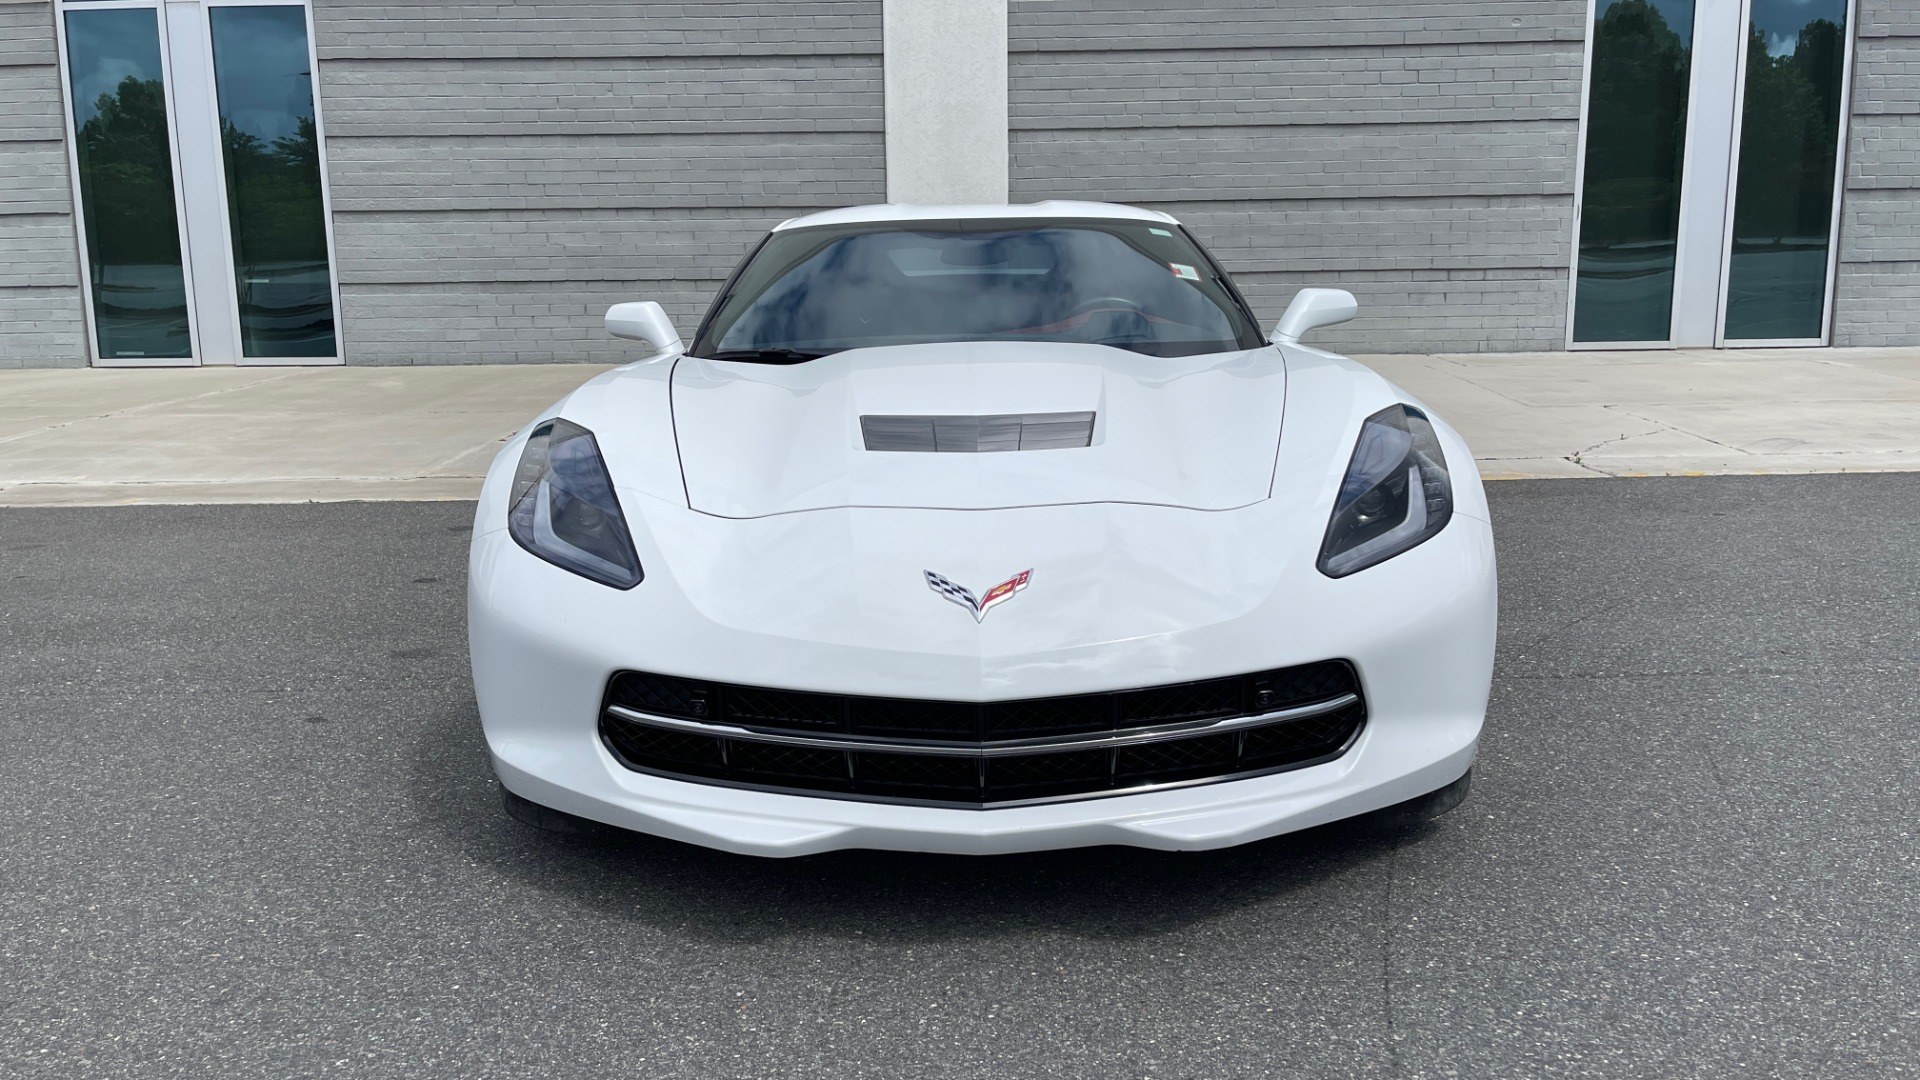 Used 2016 Chevrolet CORVETTE C7 STINGRAY COUPE Z51 3LT / NAV / PERF TRACTION MGMT / REARVIEW for sale Sold at Formula Imports in Charlotte NC 28227 18